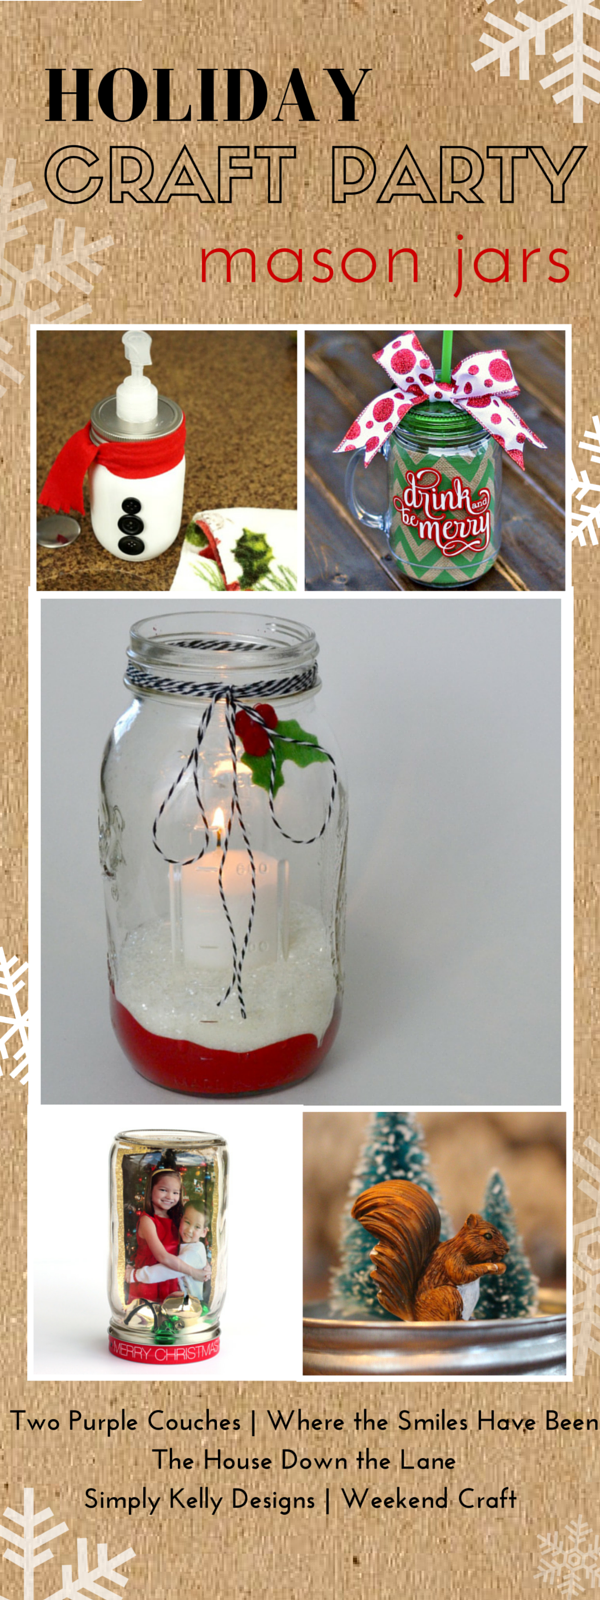 5 classic ideas for using Mason jars in your holiday decor. Join us for our Holiday Craft Part - a week full of holiday crafts, creative ideas and inspiration!